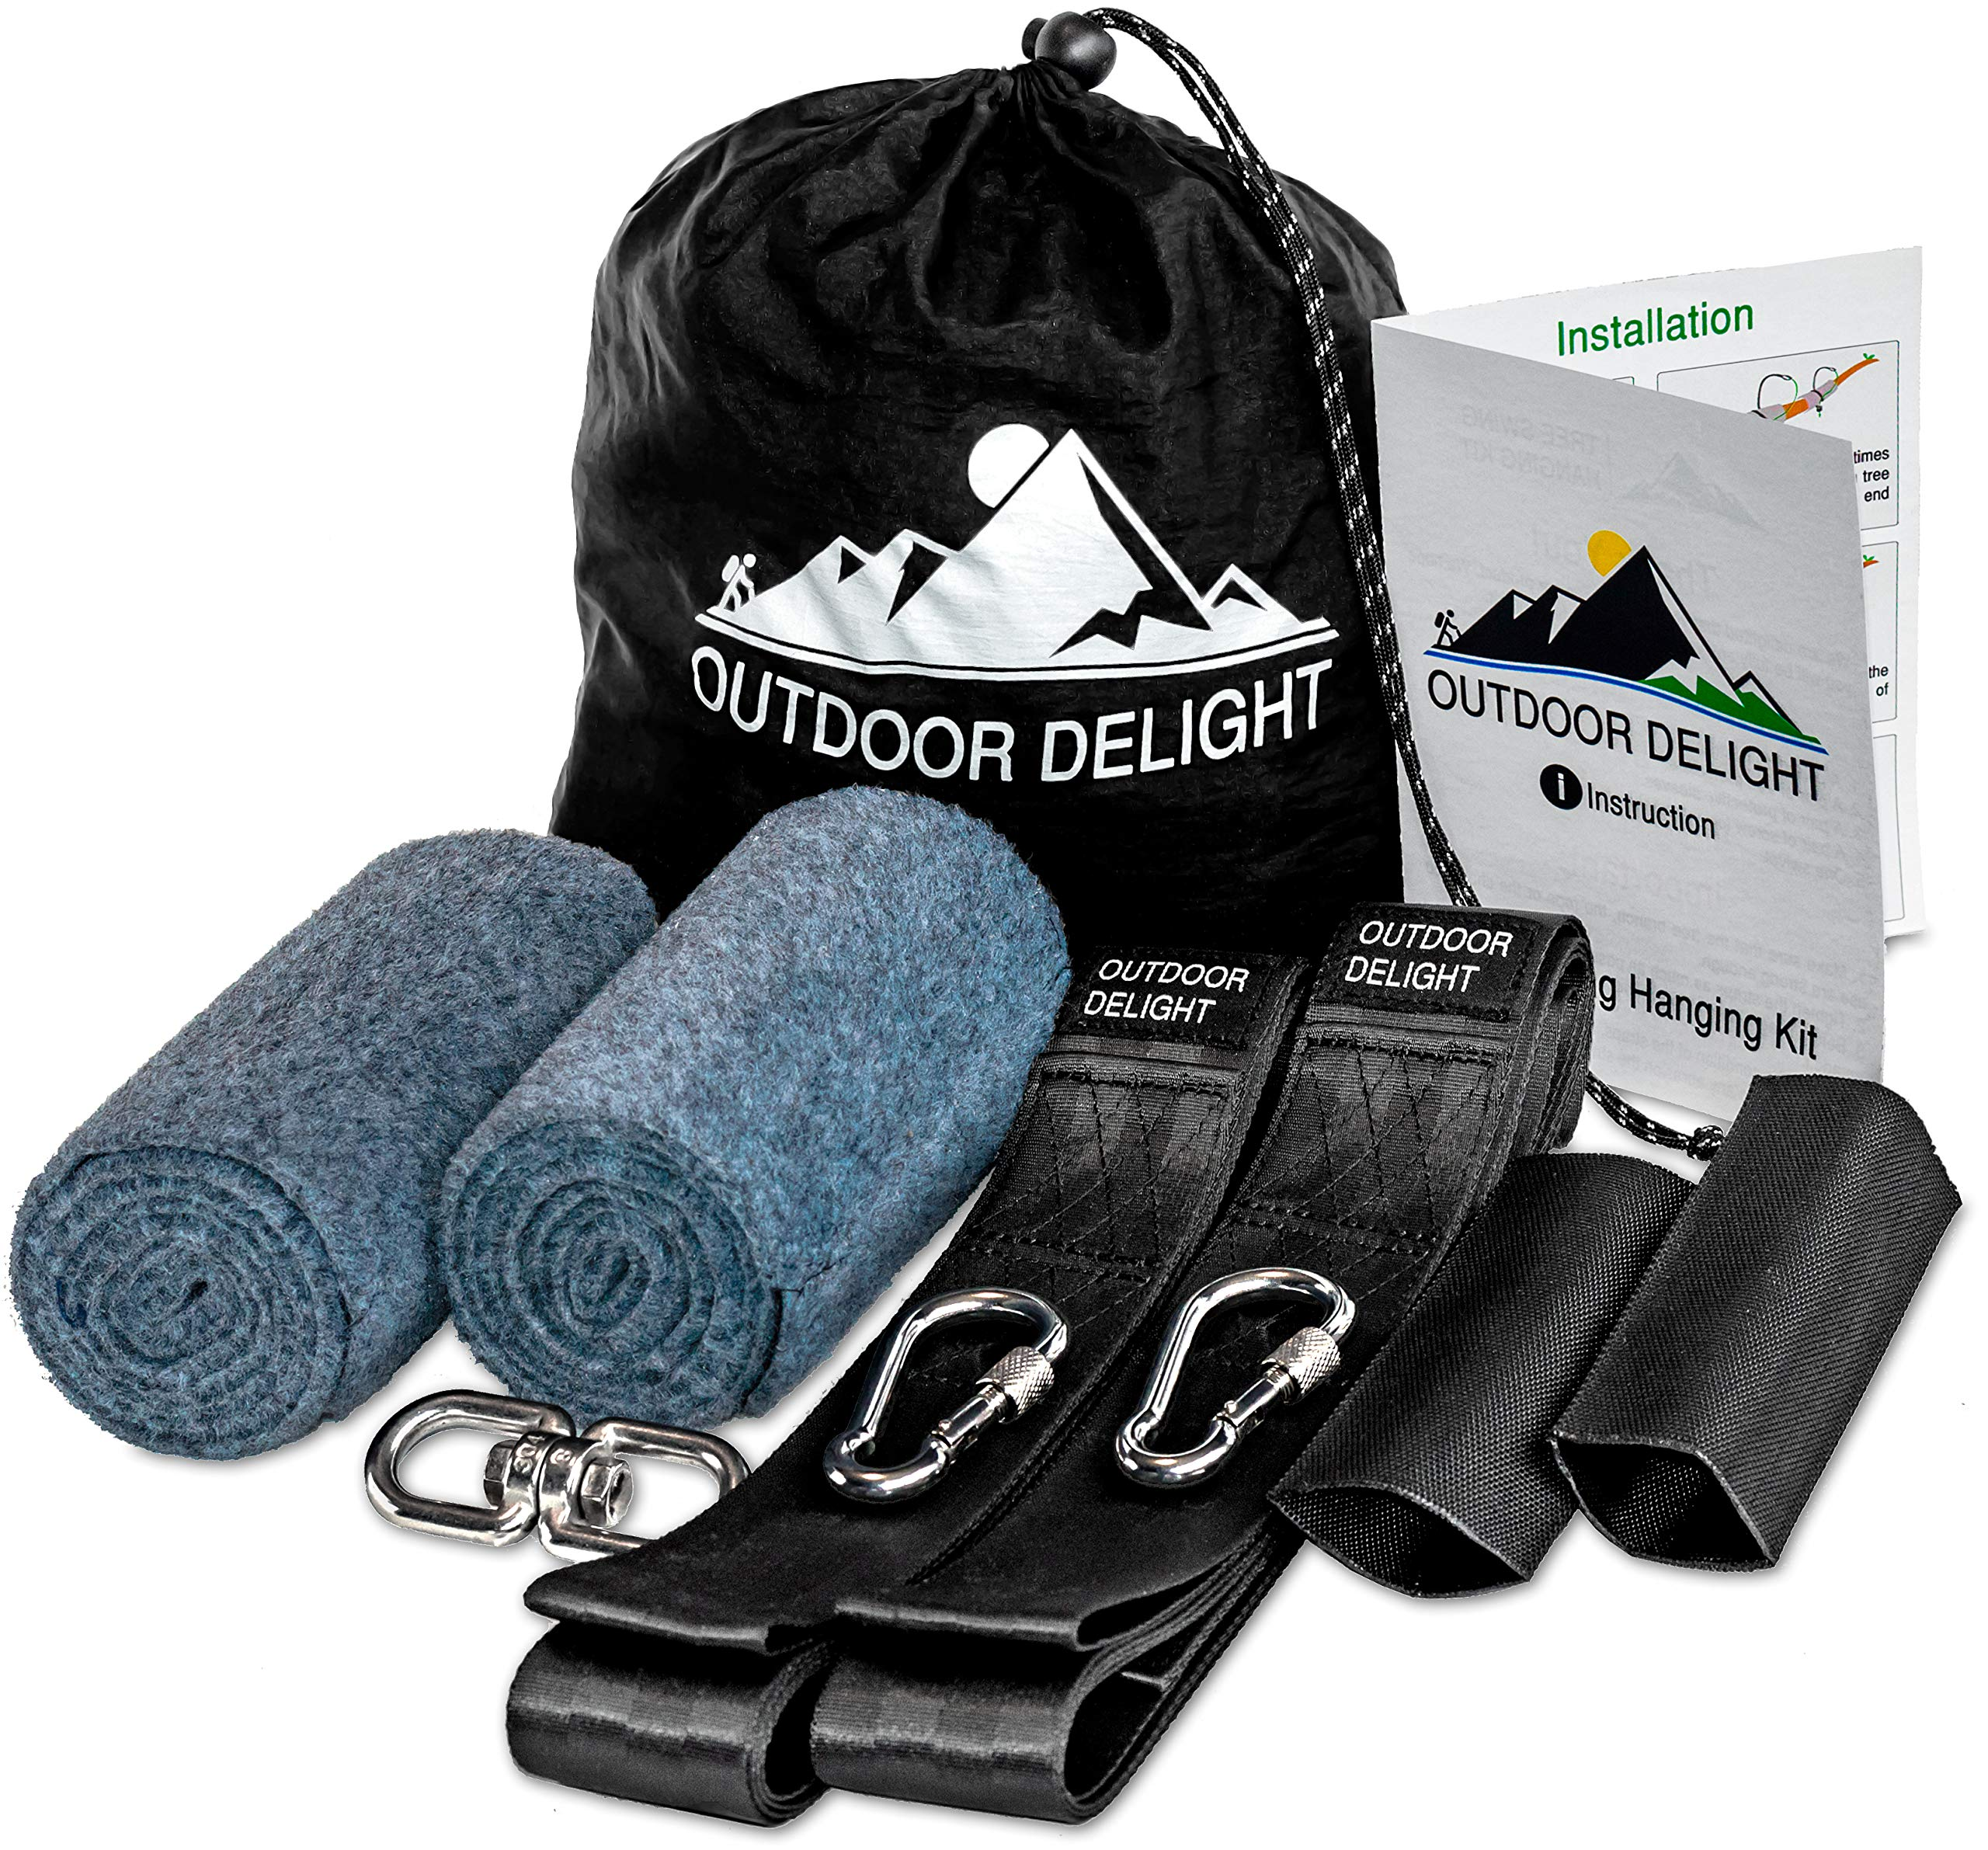 Outdoor Delight Tree Swing Hanging Kit (Set of 2): 10ft Straps (Holds 2200 lbs), Safety Sleeves, Tree Protectors, Heavy-Duty Stainless Steel Carabiners. One Swivel, Instruction, Drawstring Bag.